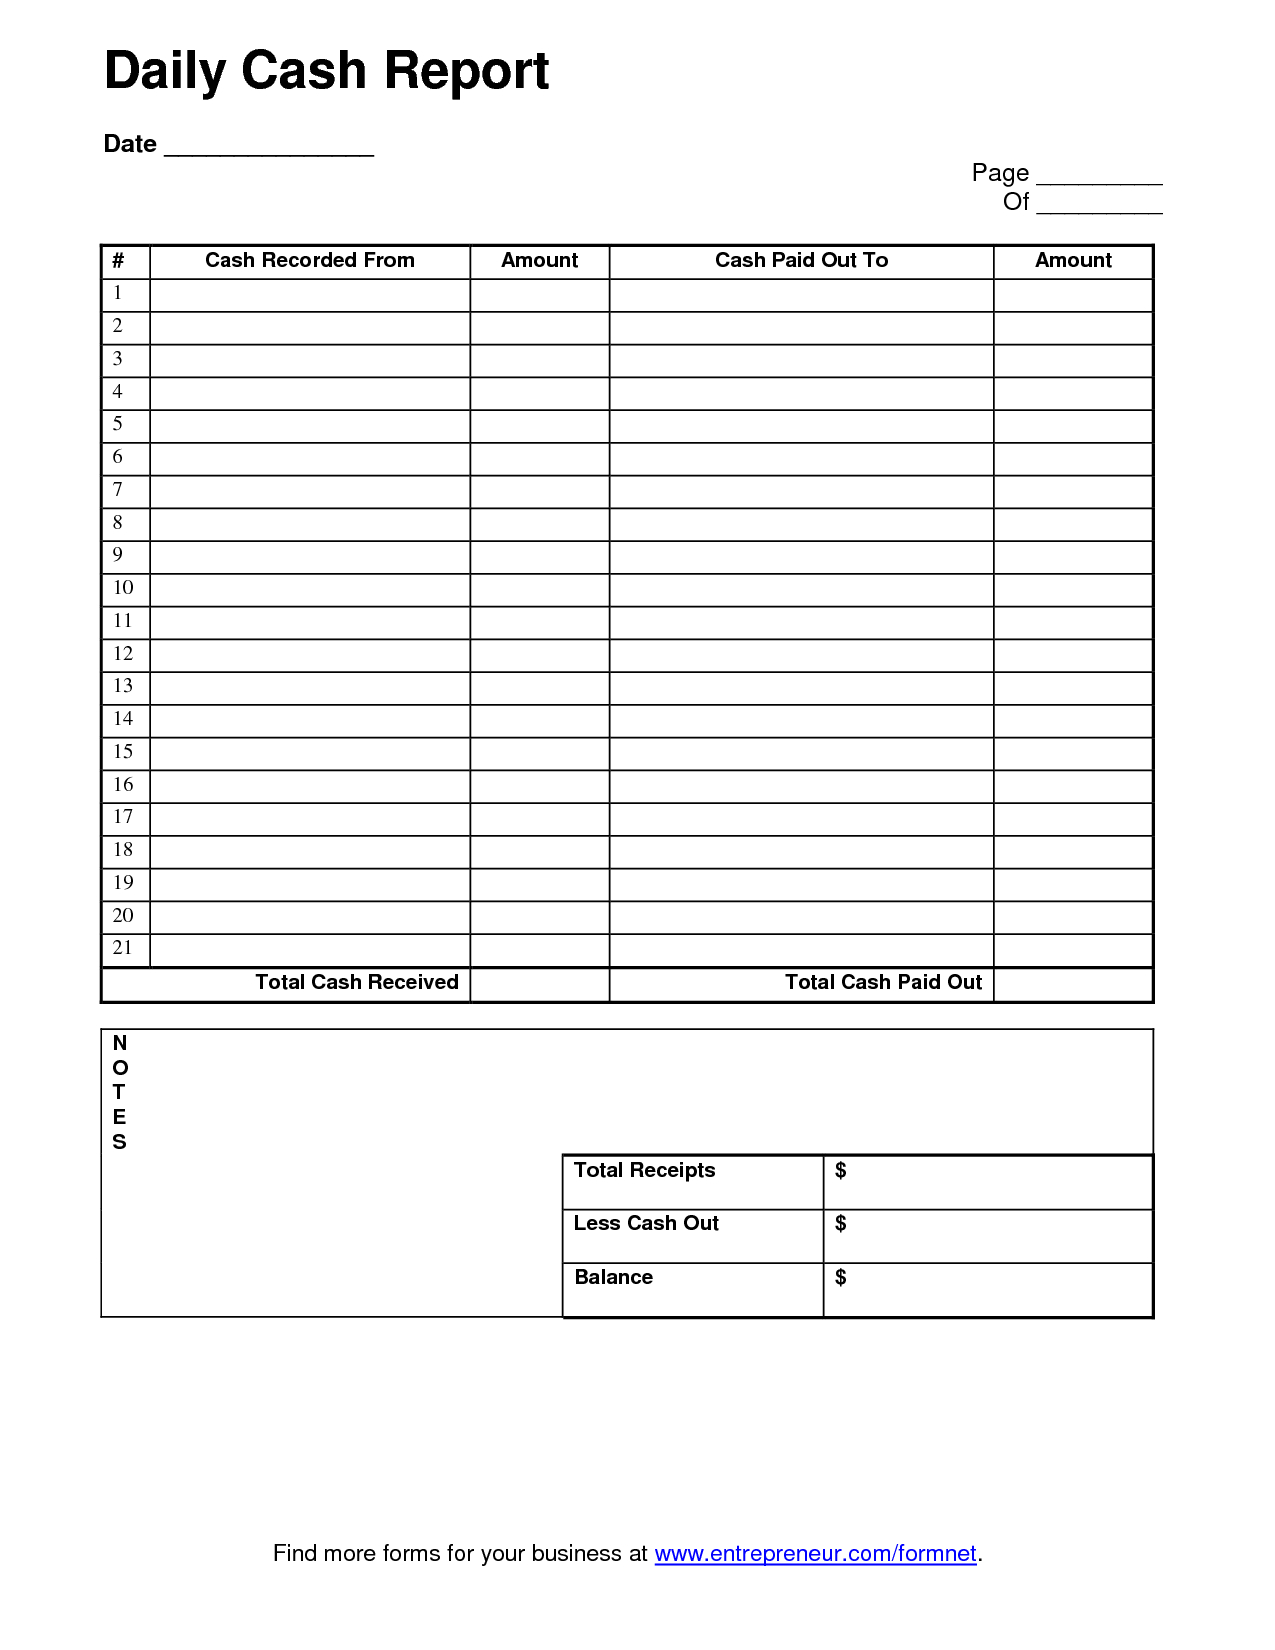 Daily Cash Sheet Template   Daily Report Template Inside Daily Report Sheet Template